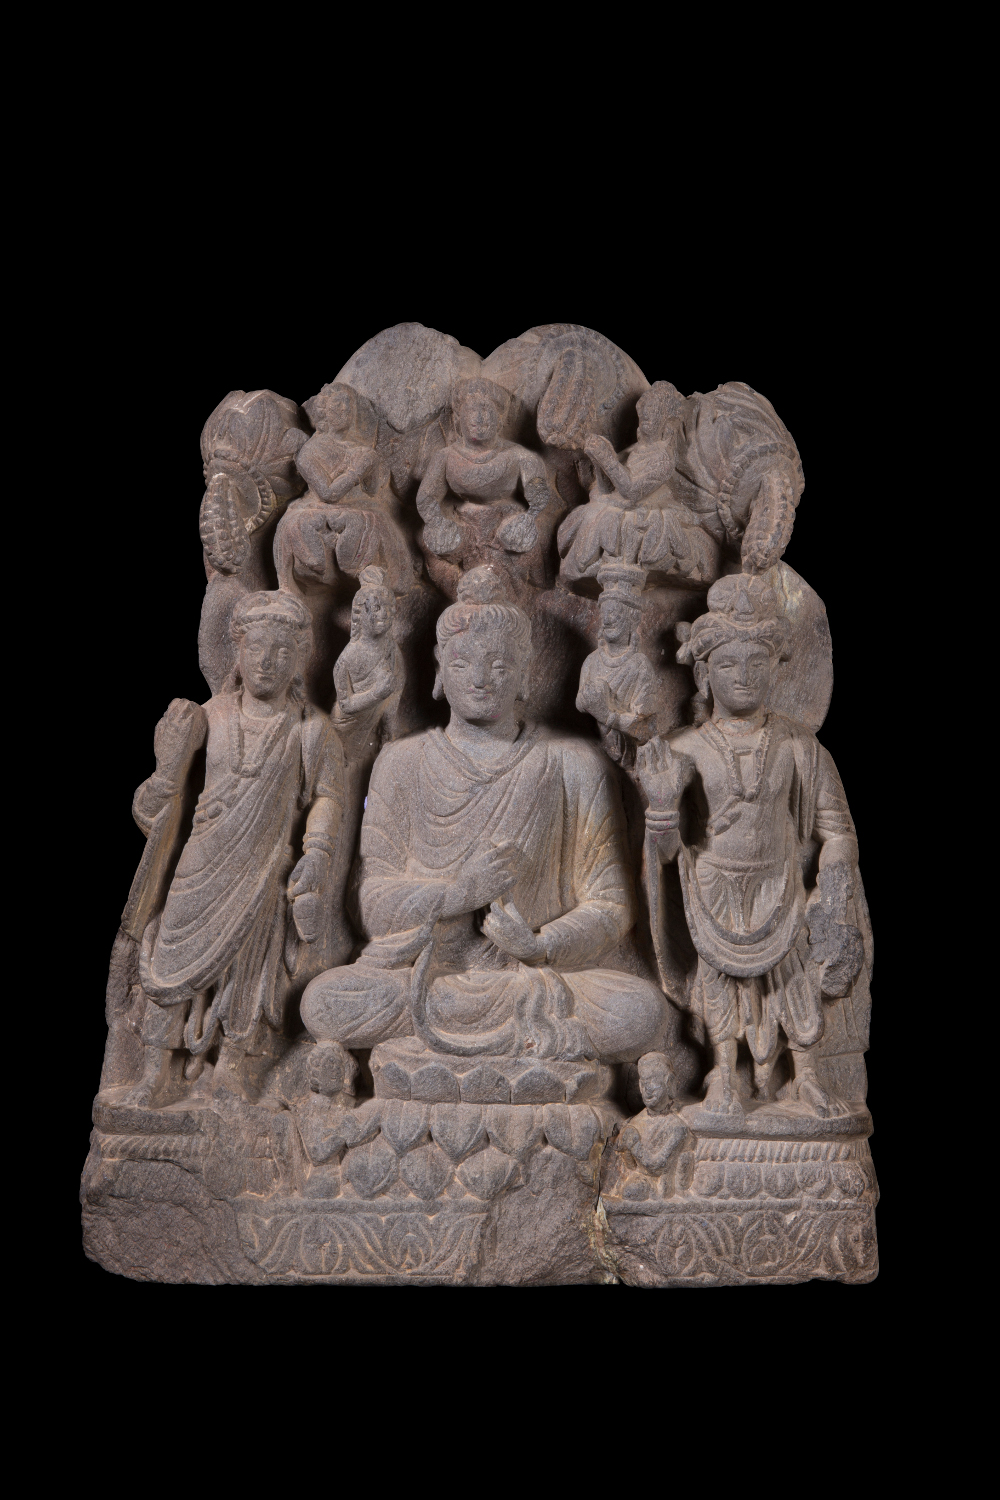 Buddhist triad from Gandhara - Grey SchistApproximately AD 150–250 Gandhara, Pakistan or AfghanistanHaryana State Archaeology and Museums